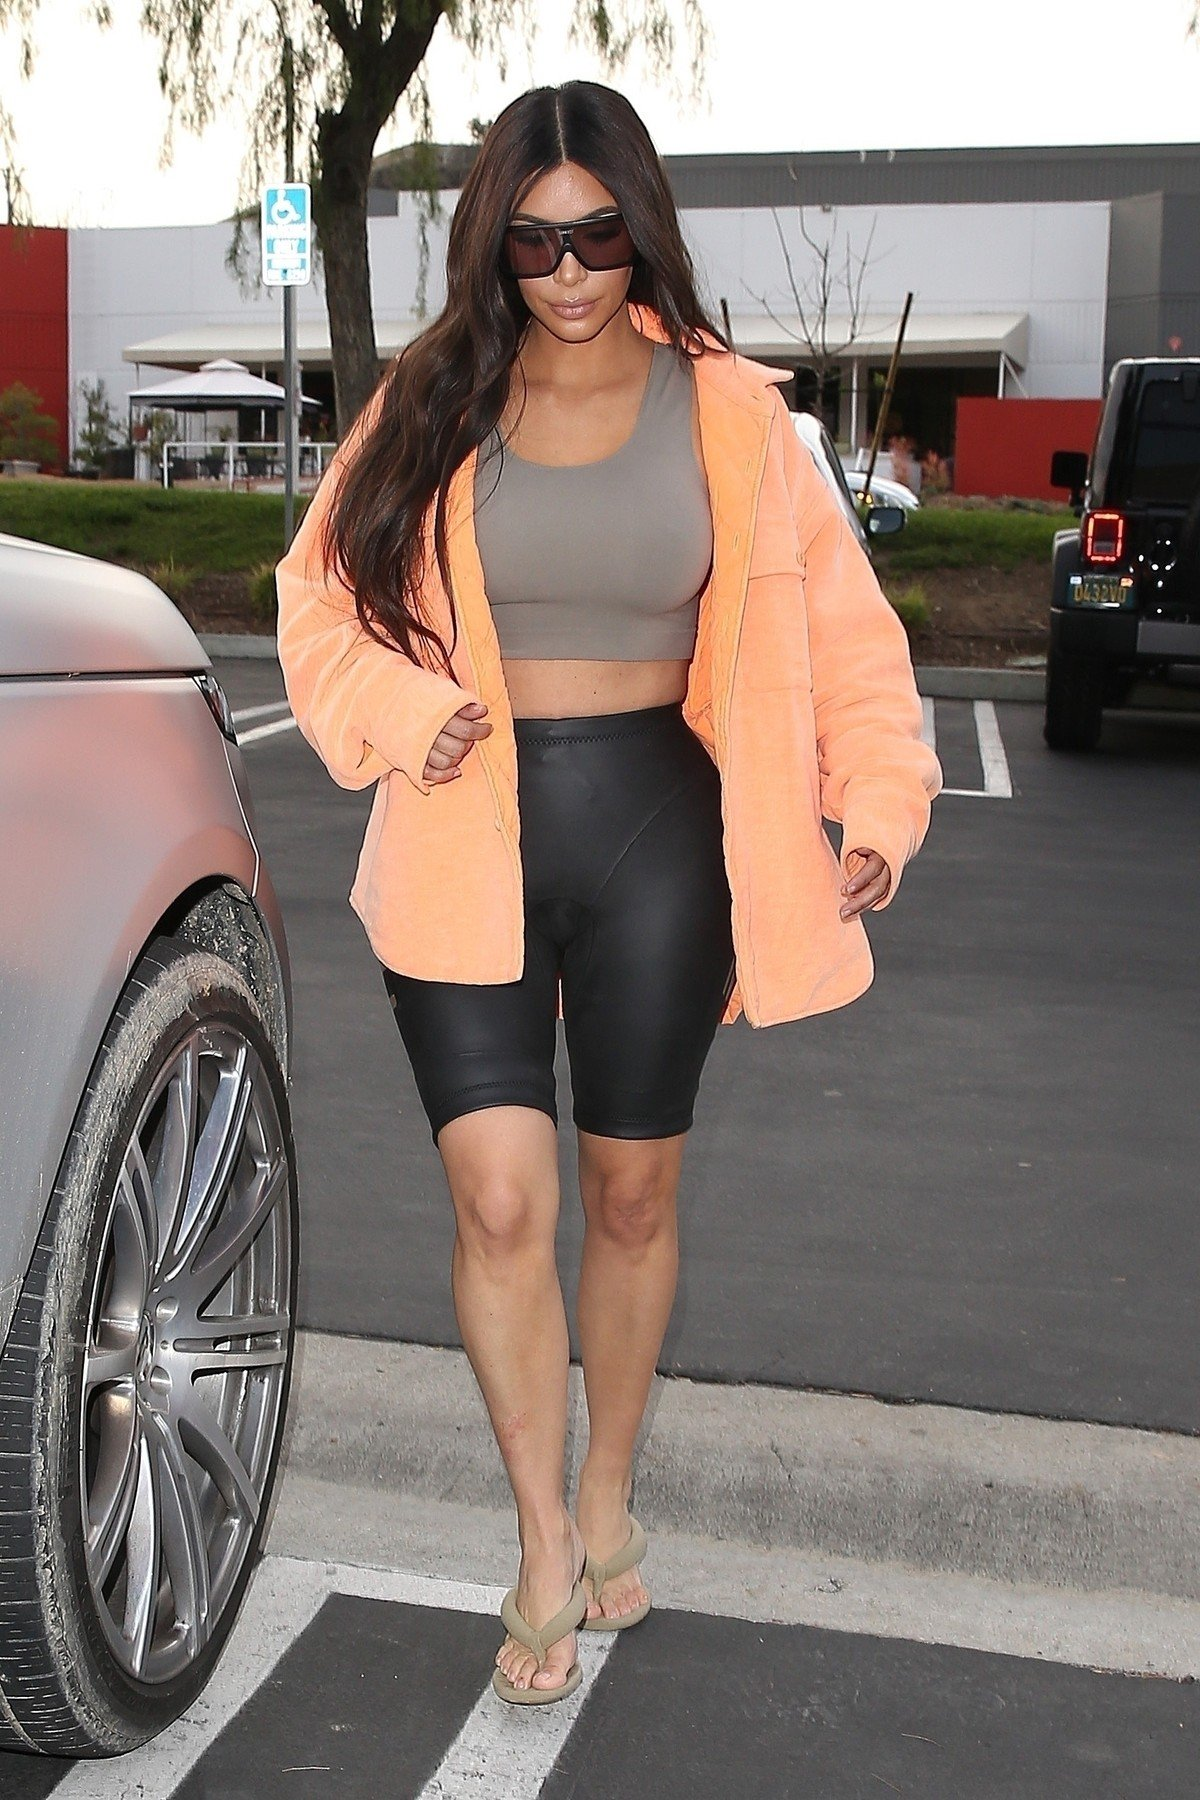 Calabasas, CA  - *EXCLUSIVE*  - Kanye West got an afternoon visit at the studio from his favorite muse, wife Kim Kardashian today. Kim paid a visit to her rapper/designer husband in black biker shorts,  bra top, peach coat and large sunnies after grocery shopping with sister Kourtney earlier in the day.  Kanye has a new shade of blonde and pink to his hair and wore a pair of all white Yeezy 350 V2 Triple White which are rumored to be re-releasing in the coming months.  Pictured: Kim Kardashian  BACKGRID USA 20 MARCH 2018, Image: 366451214, License: Rights-managed, Restrictions: , Model Release: no, Credit line: Profimedia, AKM-GSI